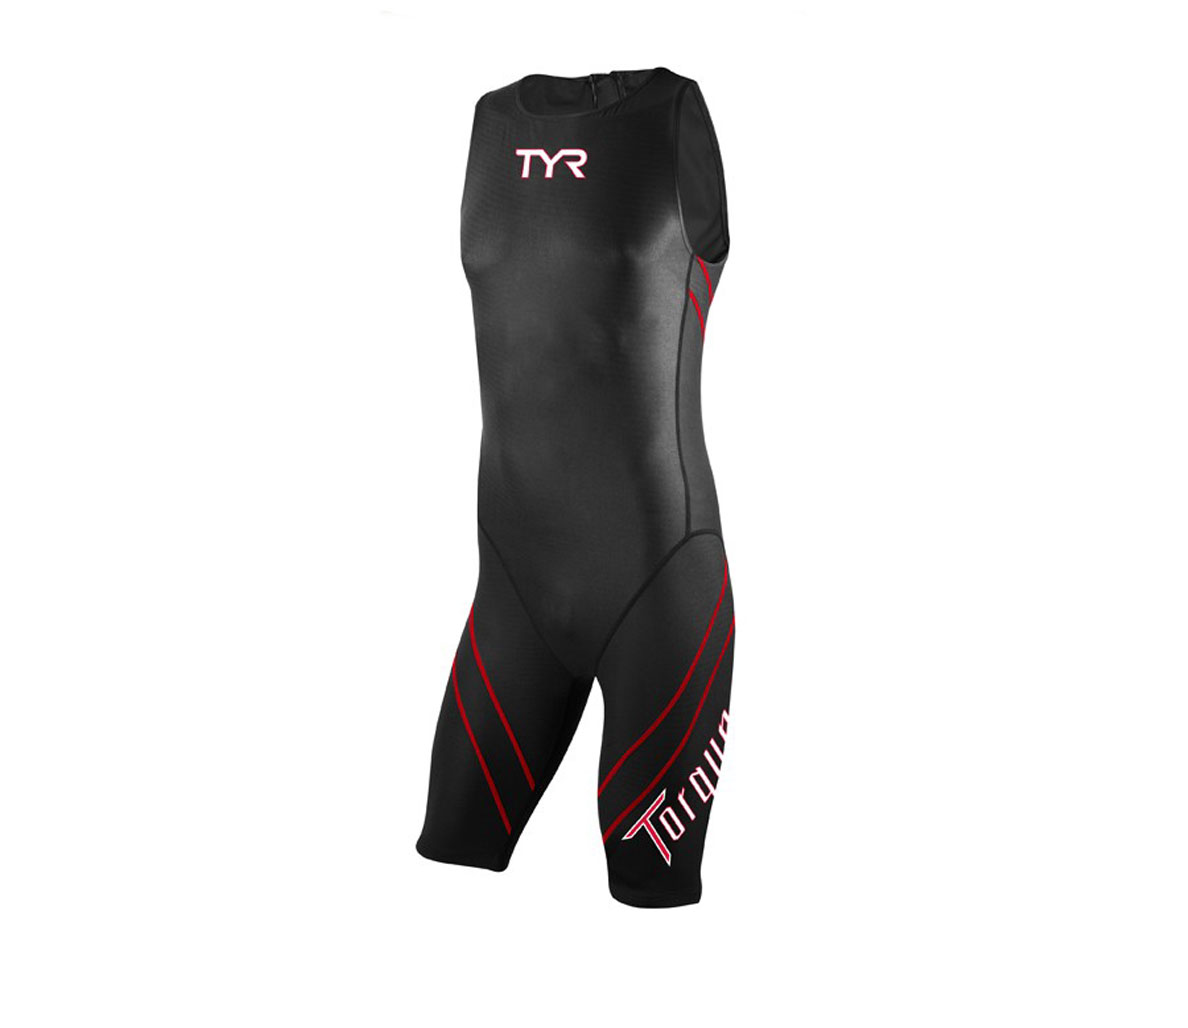 b22fe43e6fd The Ultimate Triathlon Gear Guide